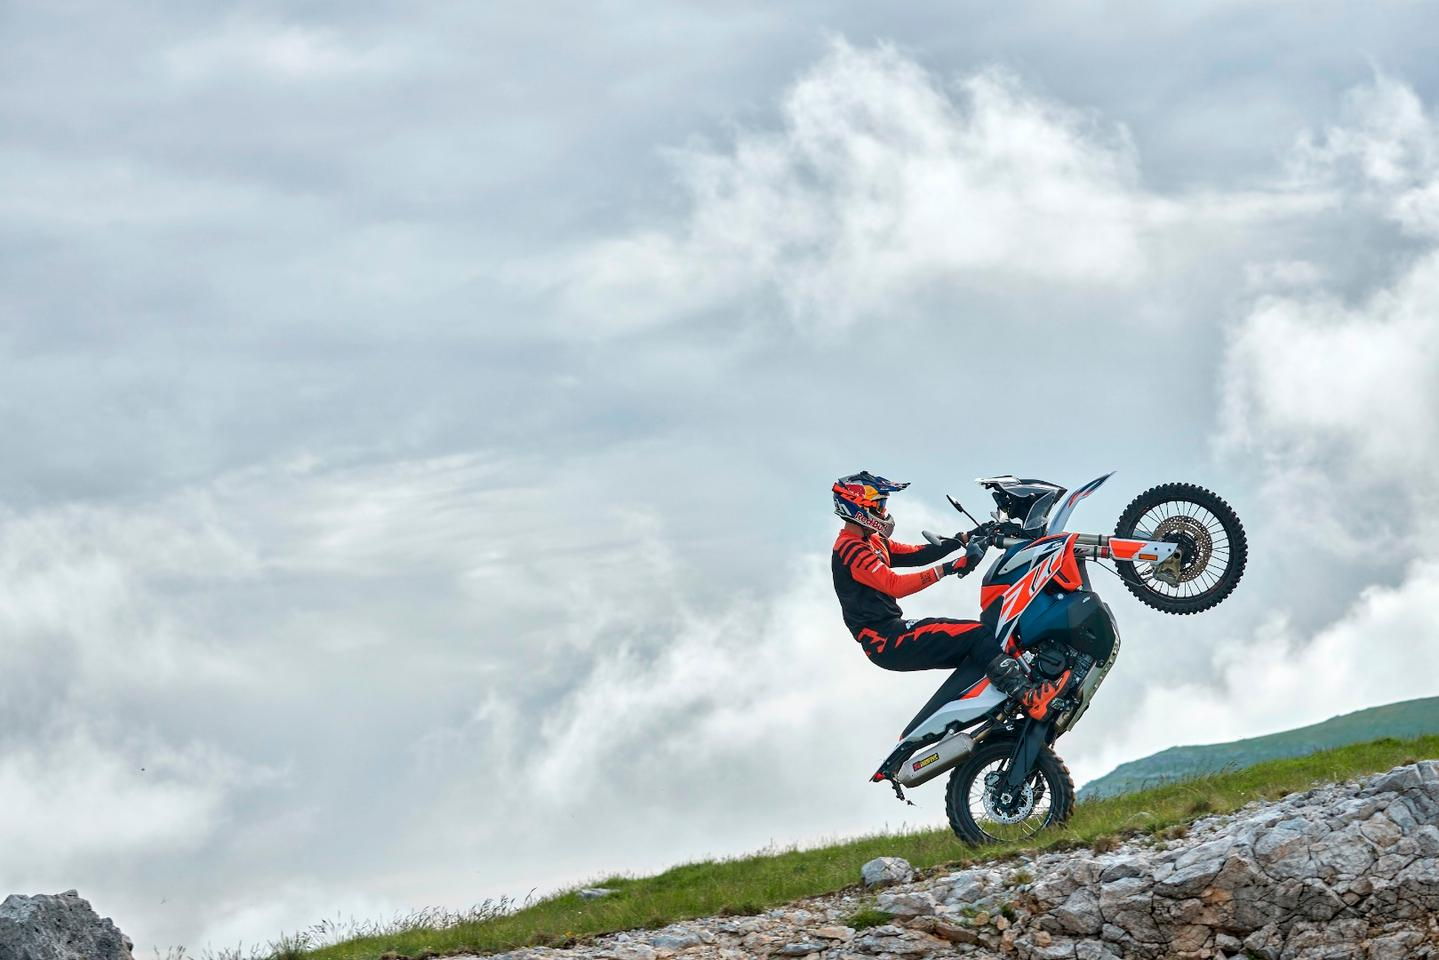 A new Rally version gives KTM fans something to wheelie about, as if they needed it